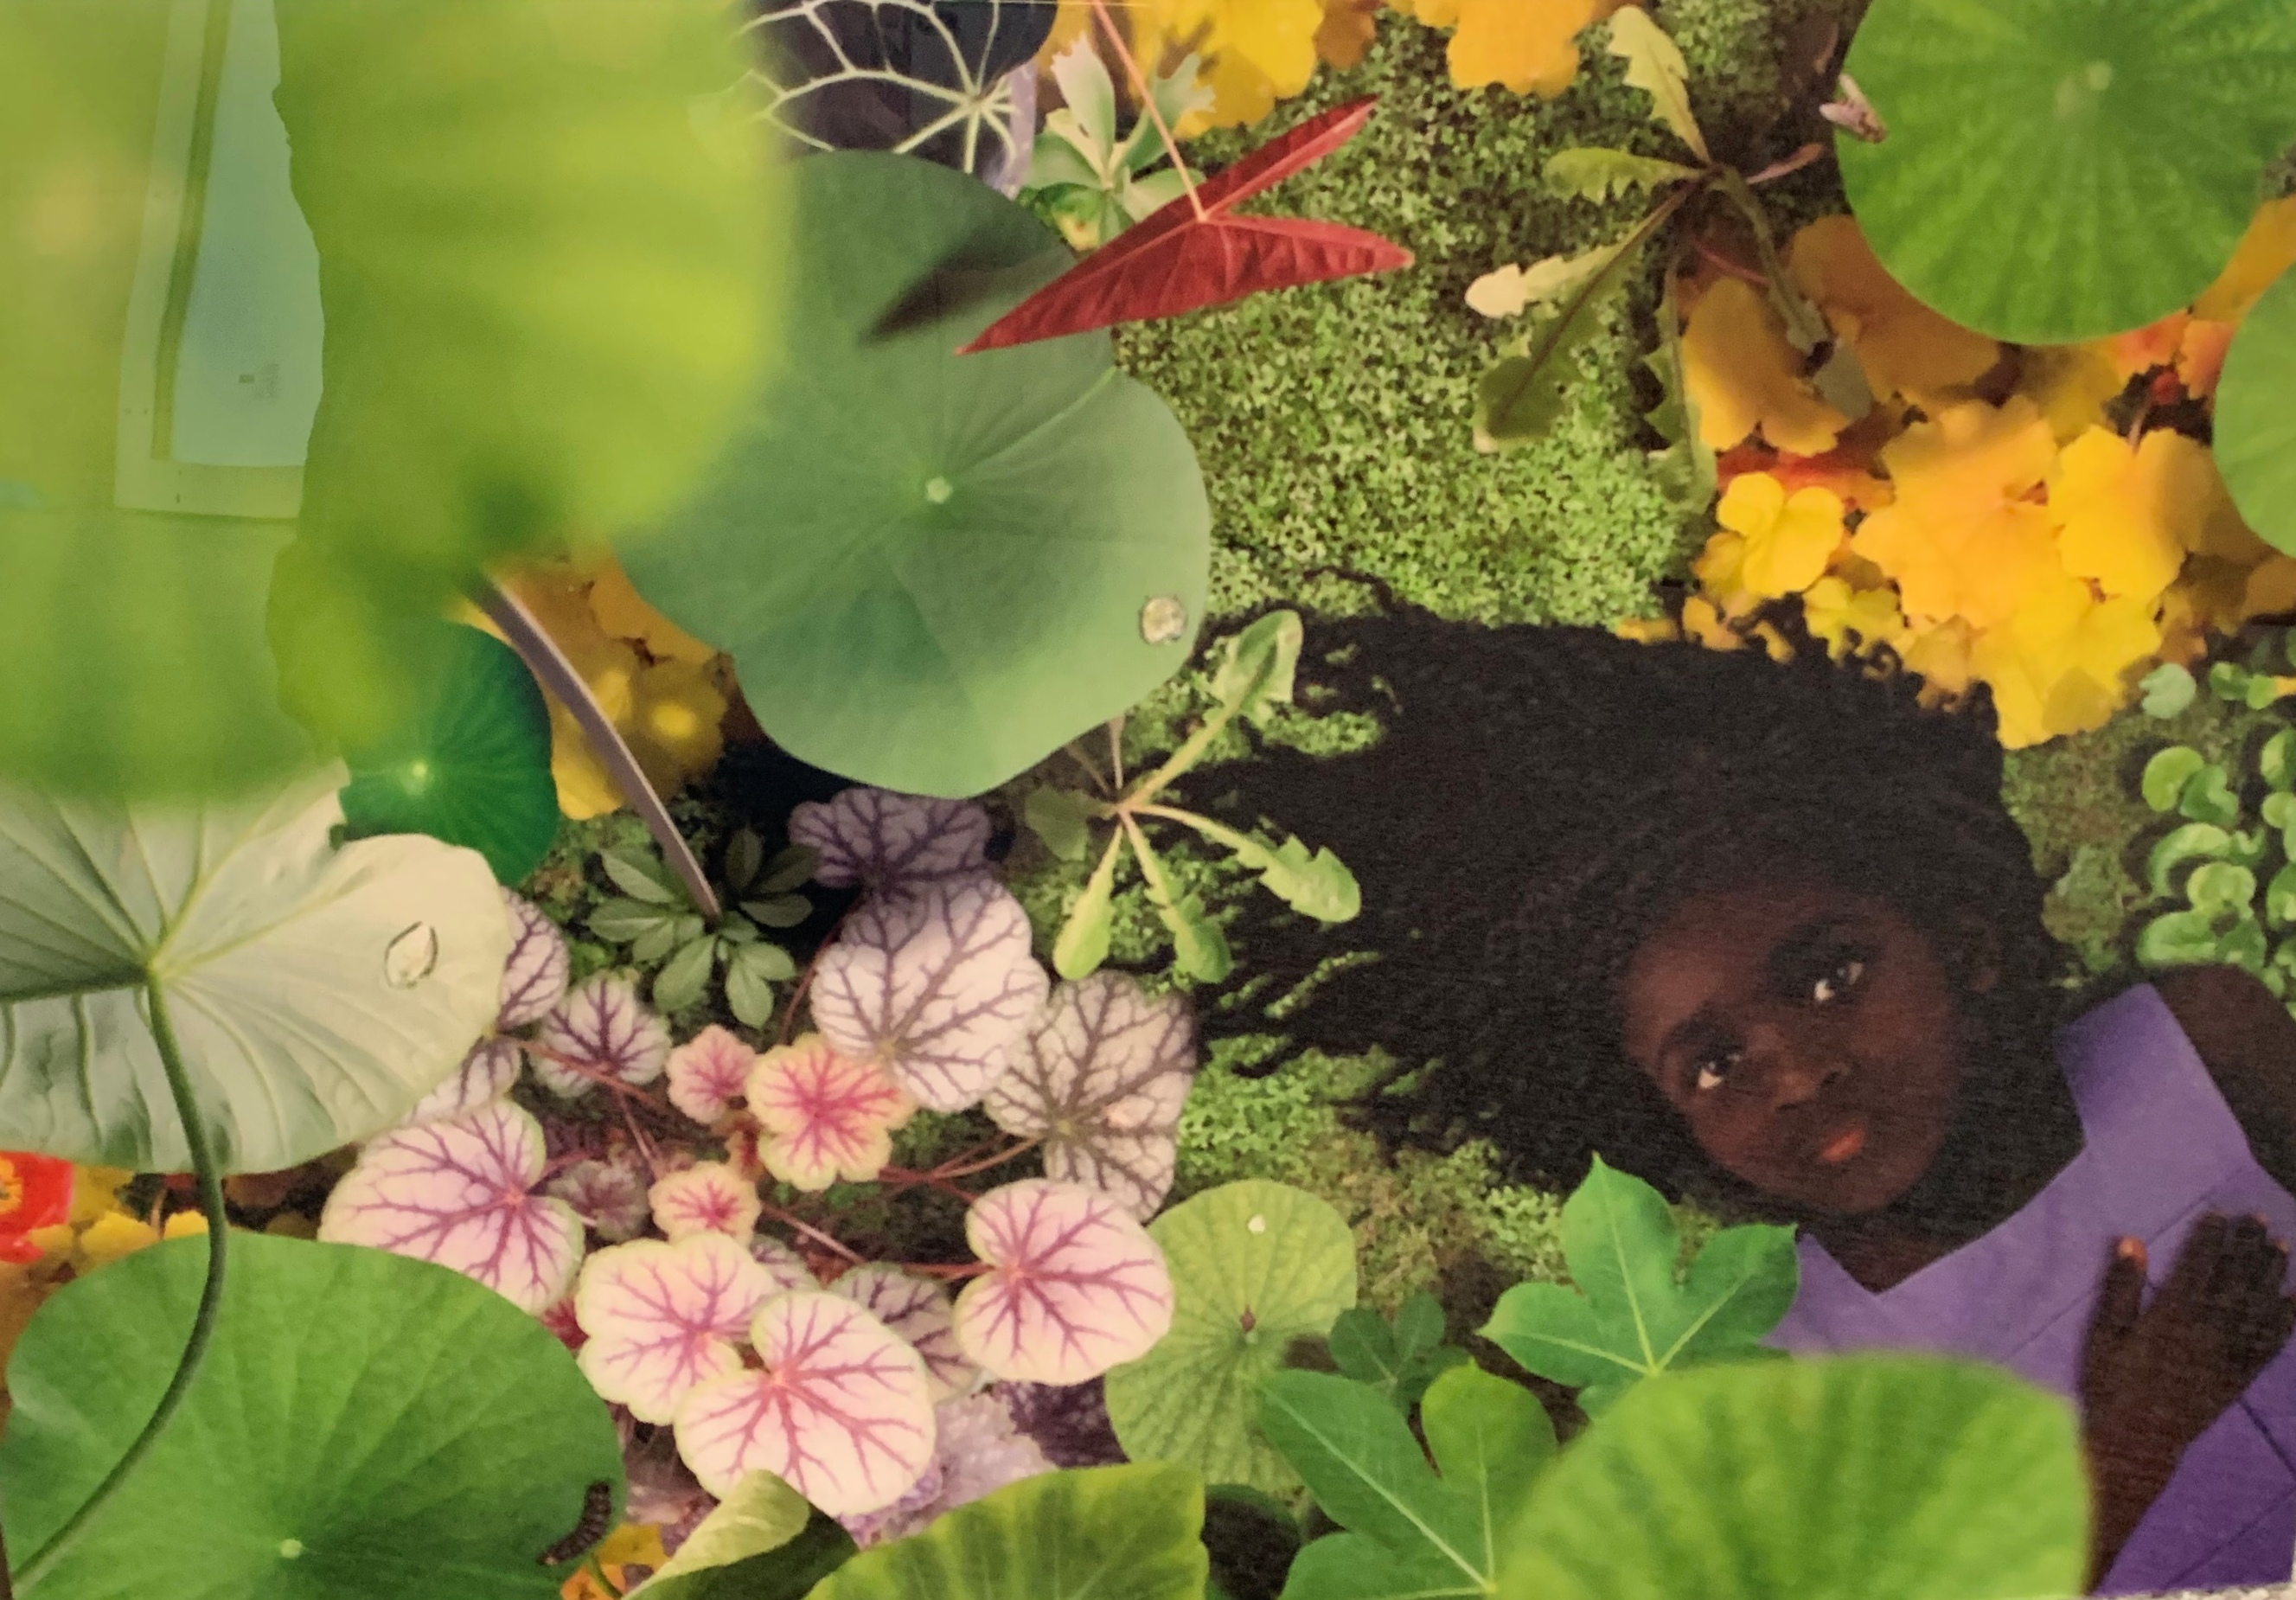 Dawn No 2 artwork by Ruud Van Empel - art listed for sale on Artplode